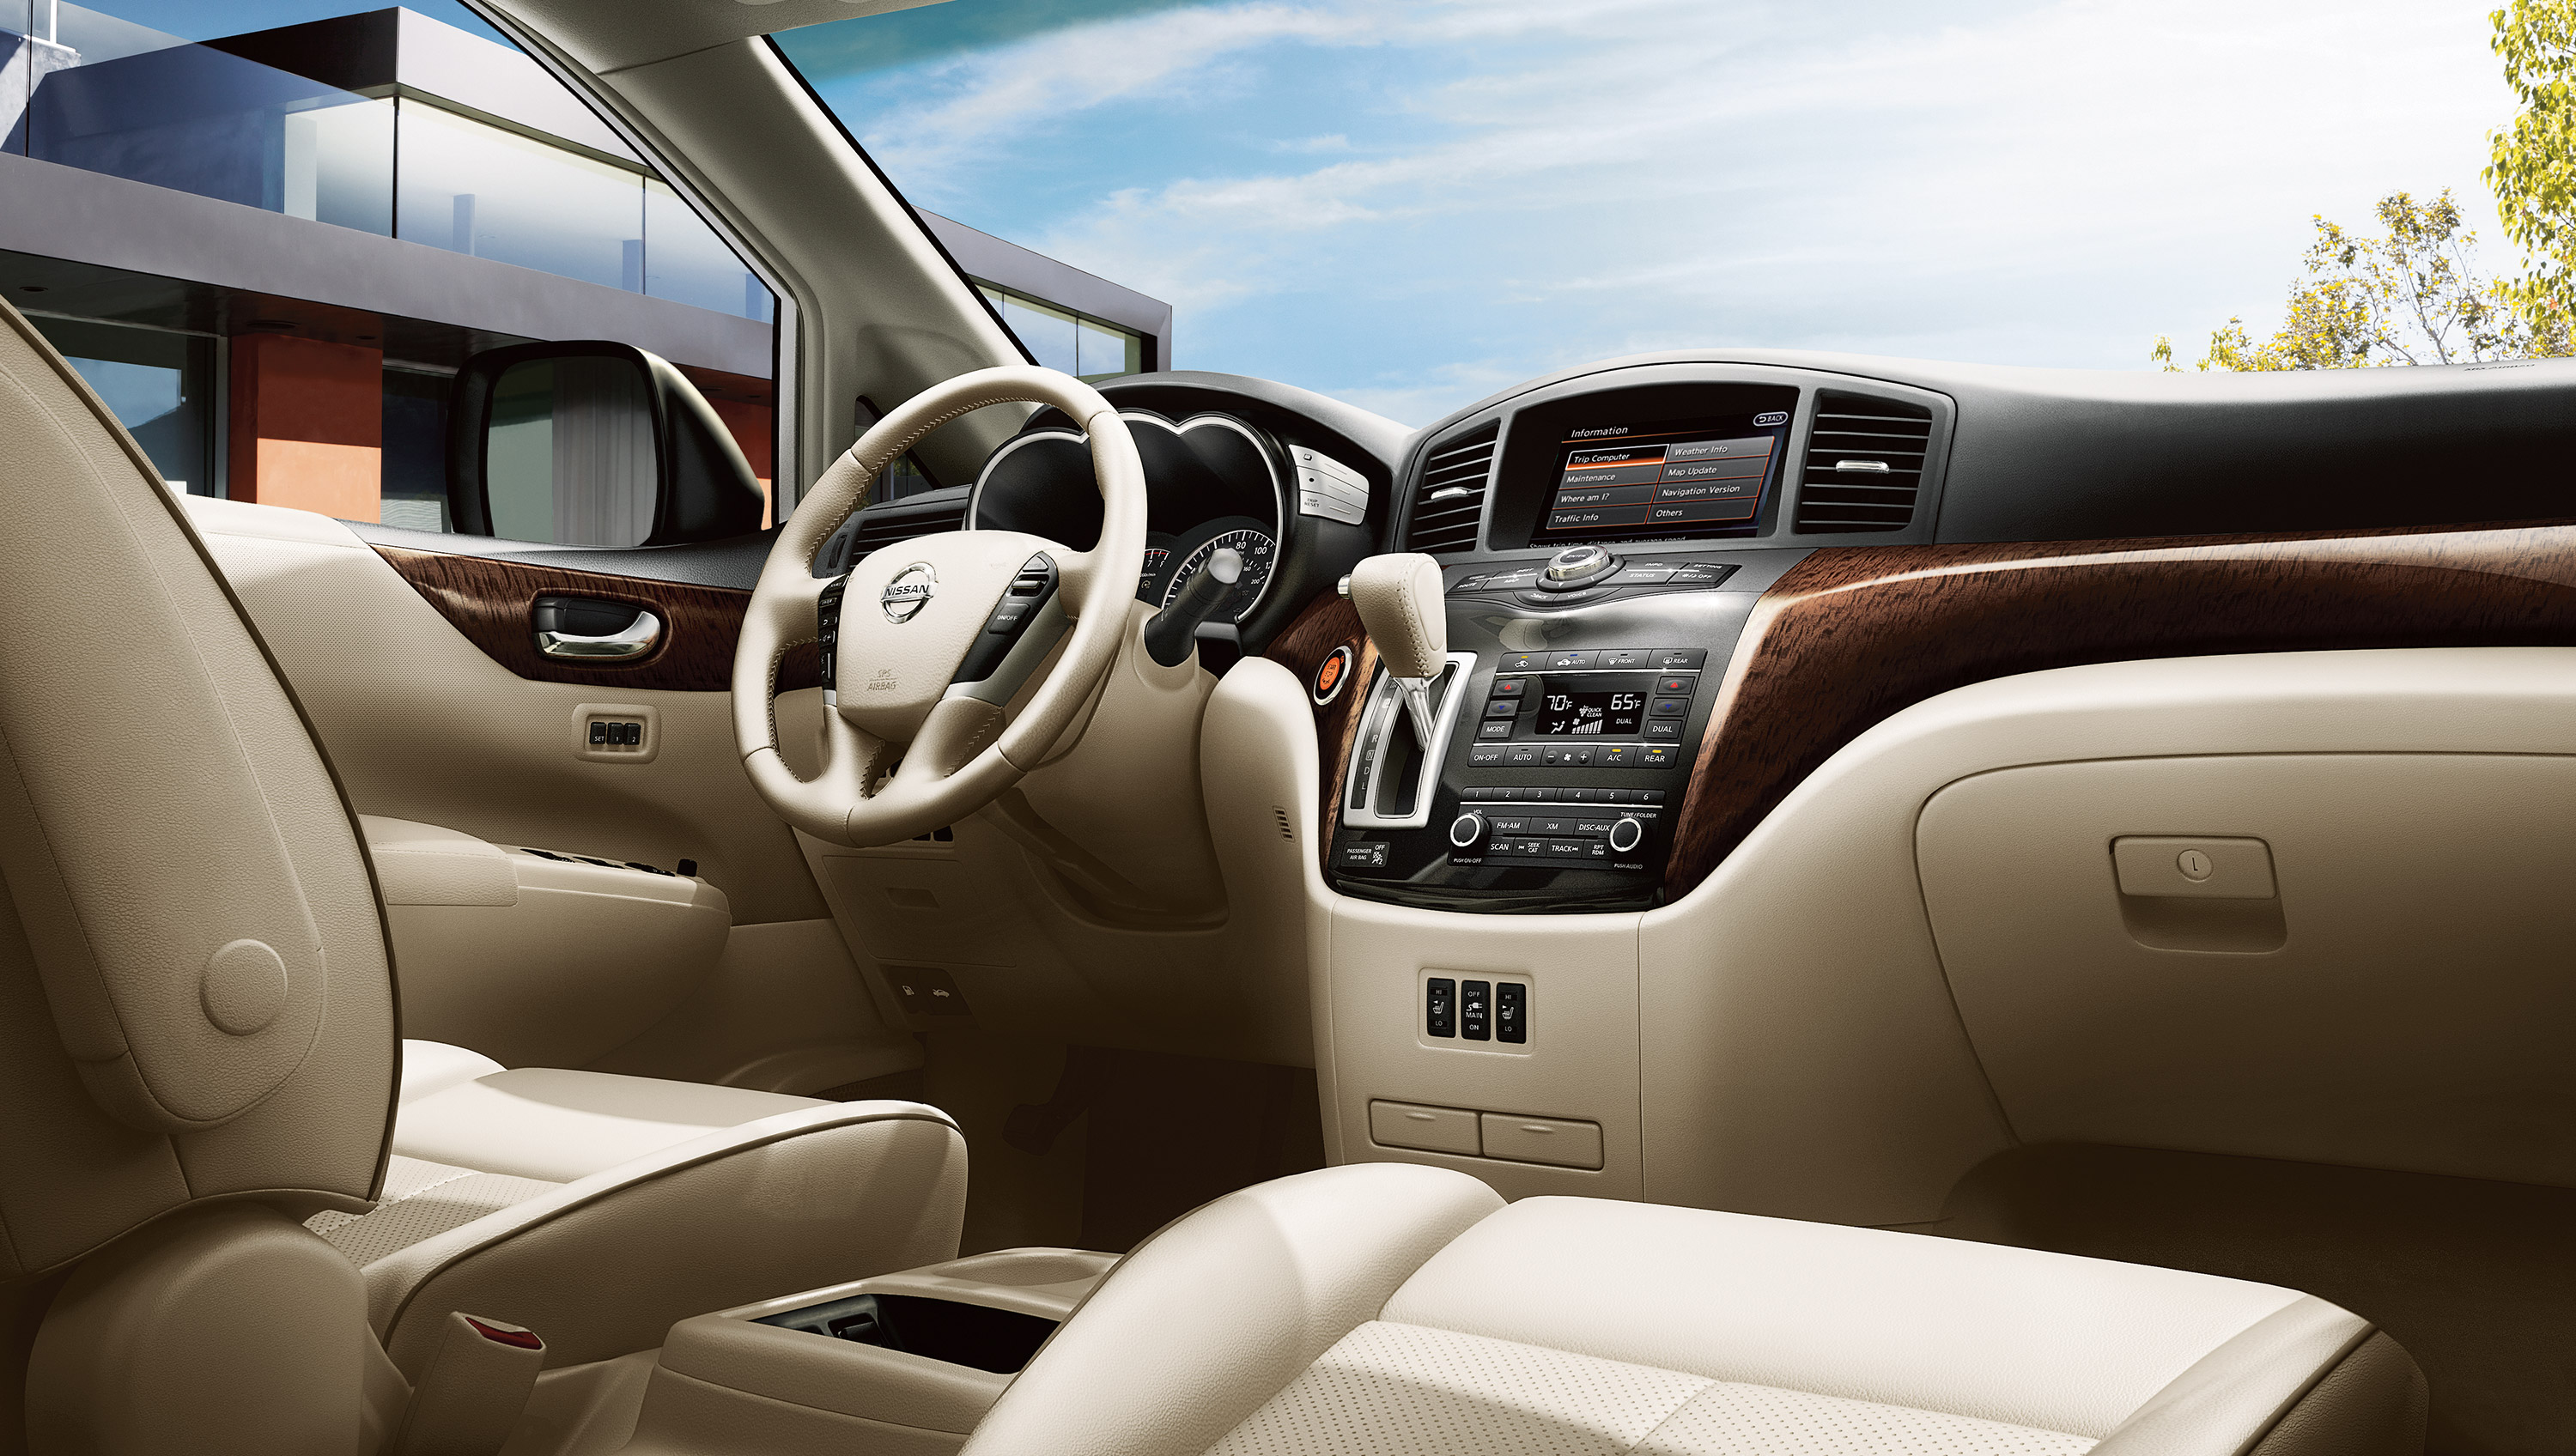 New Nissan Quest Interior main image